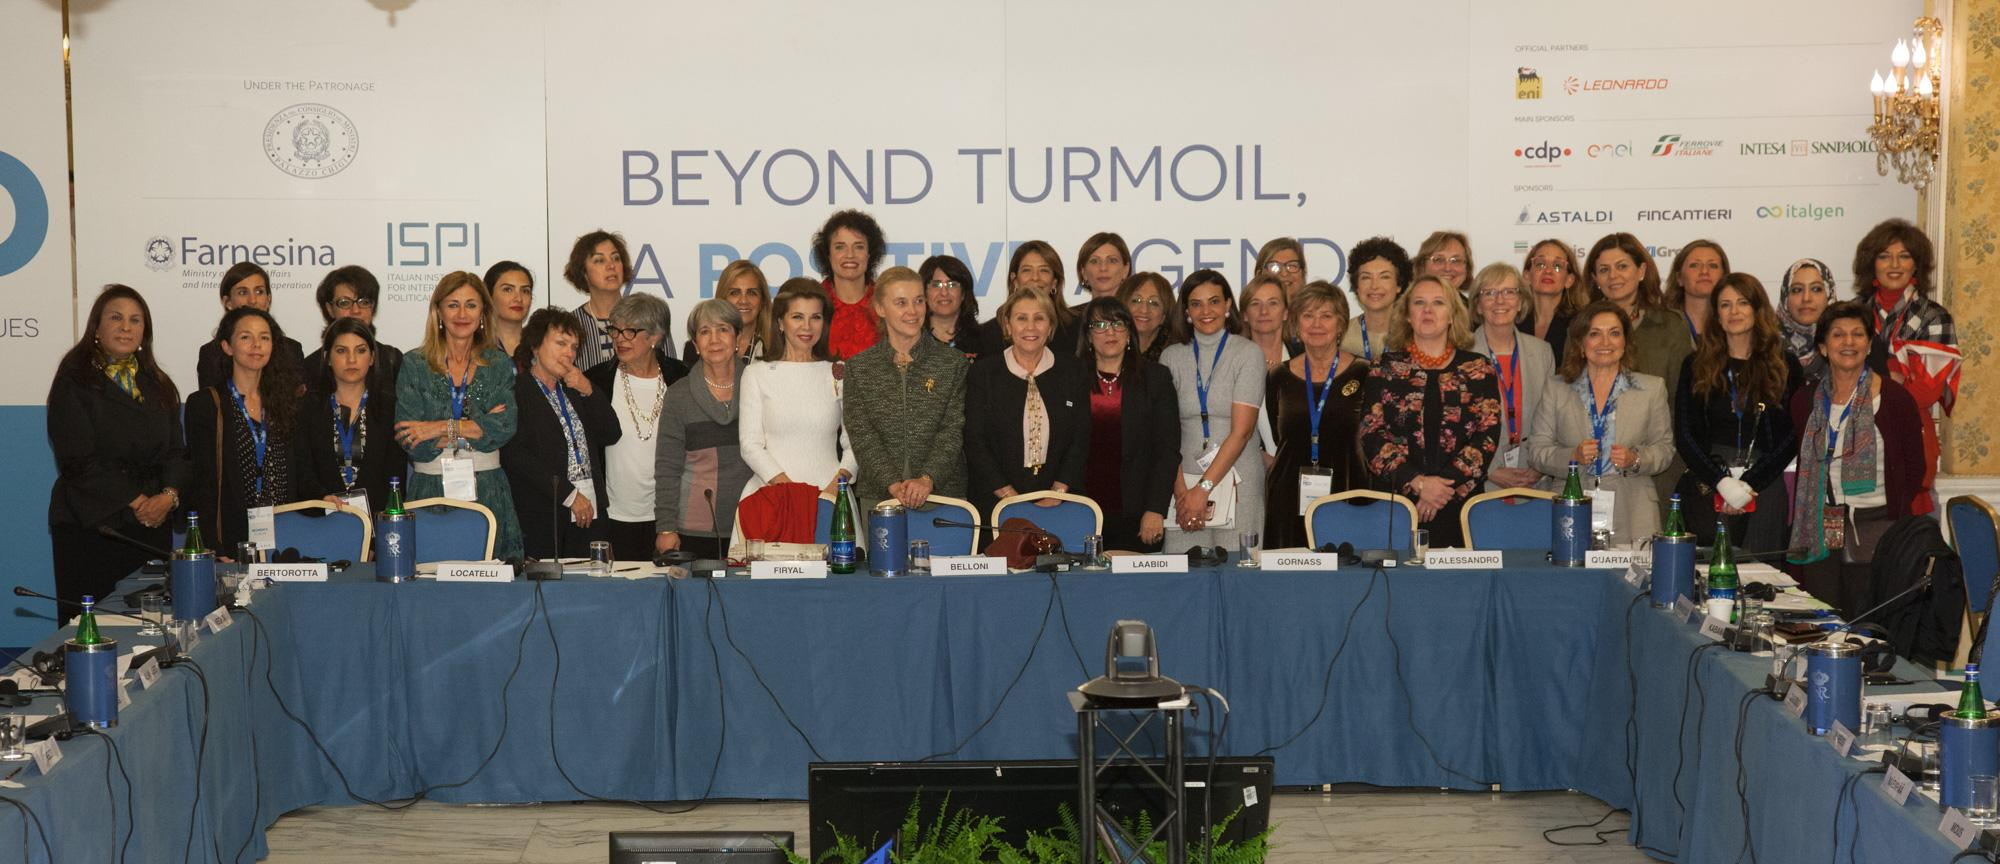 Rome MED conference Women's Forum, November 29, 2017.